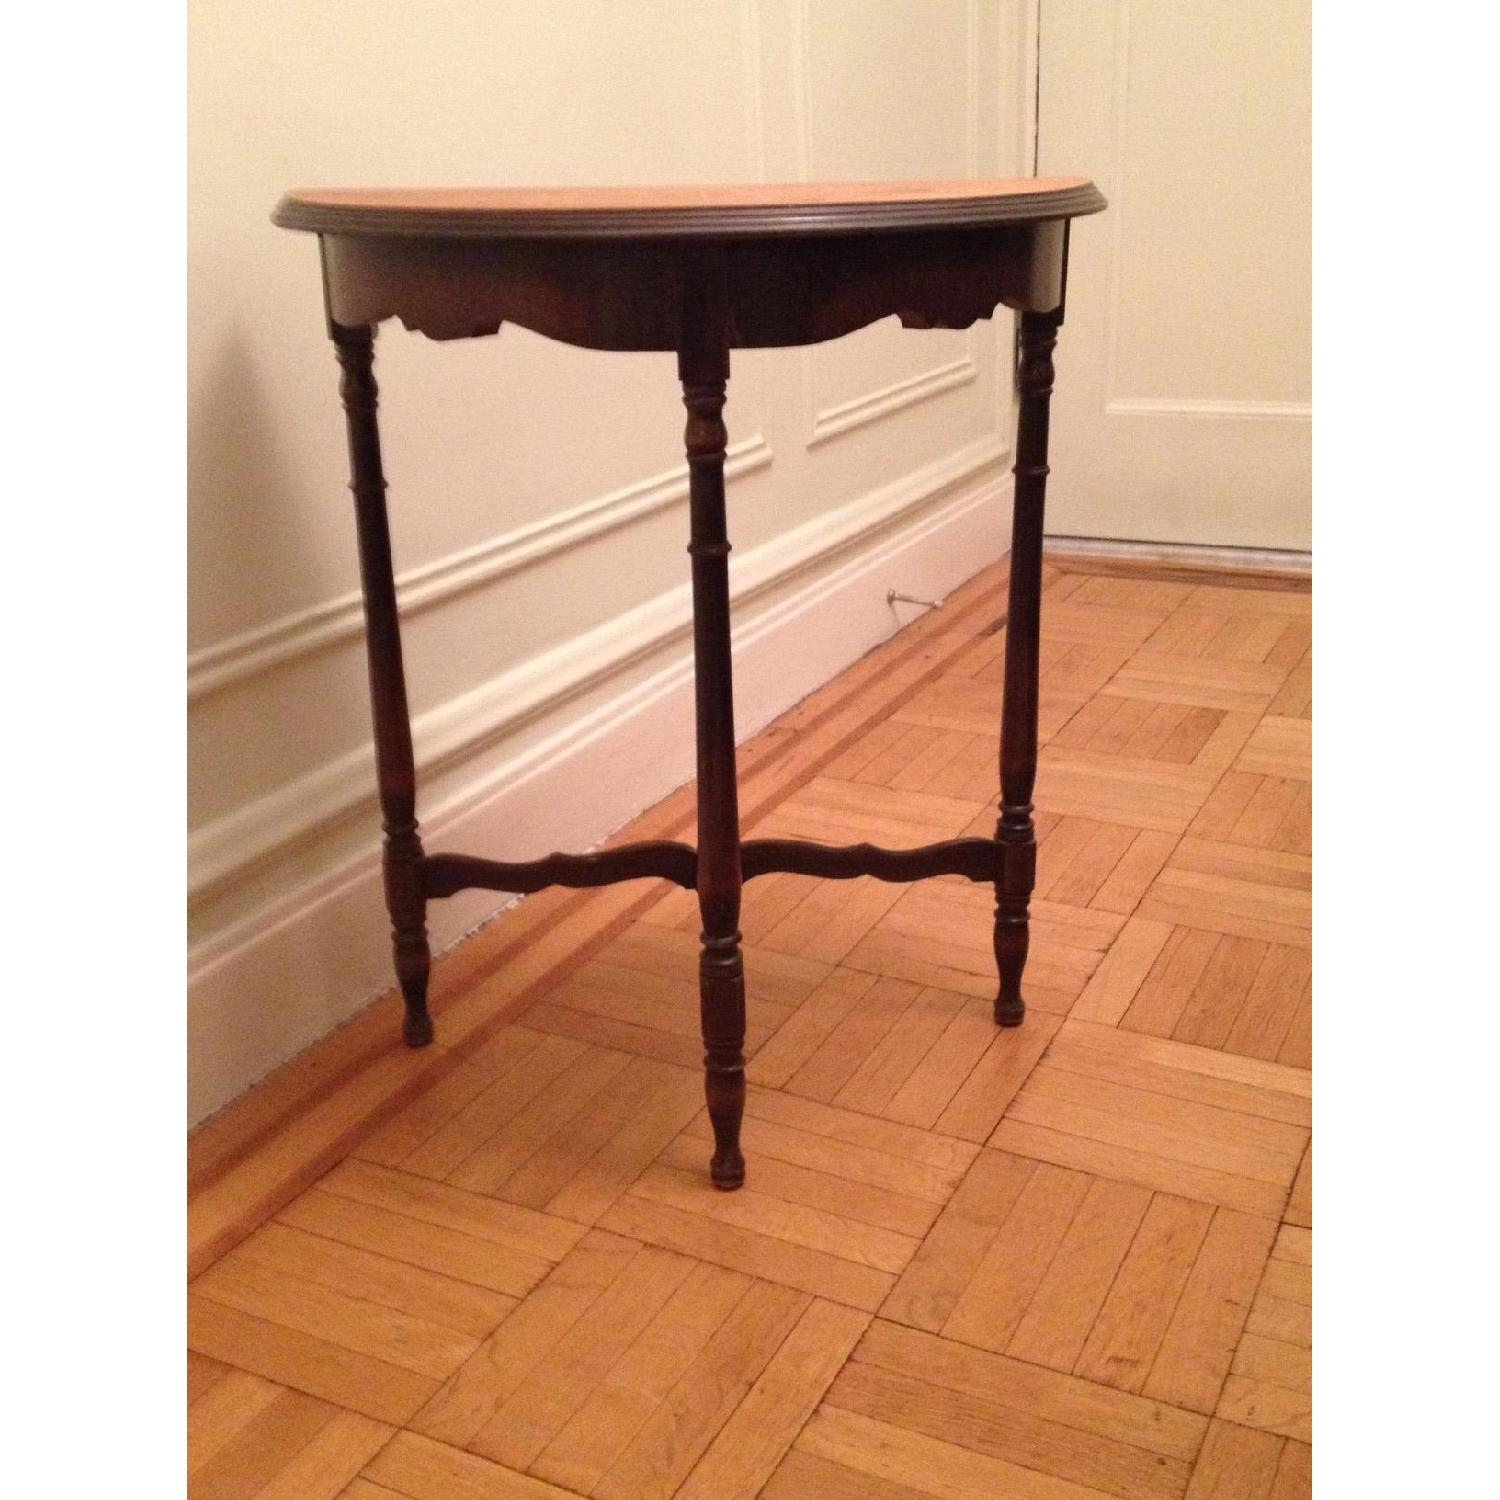 Imperial Furniture Co. Decorative Side Table-0